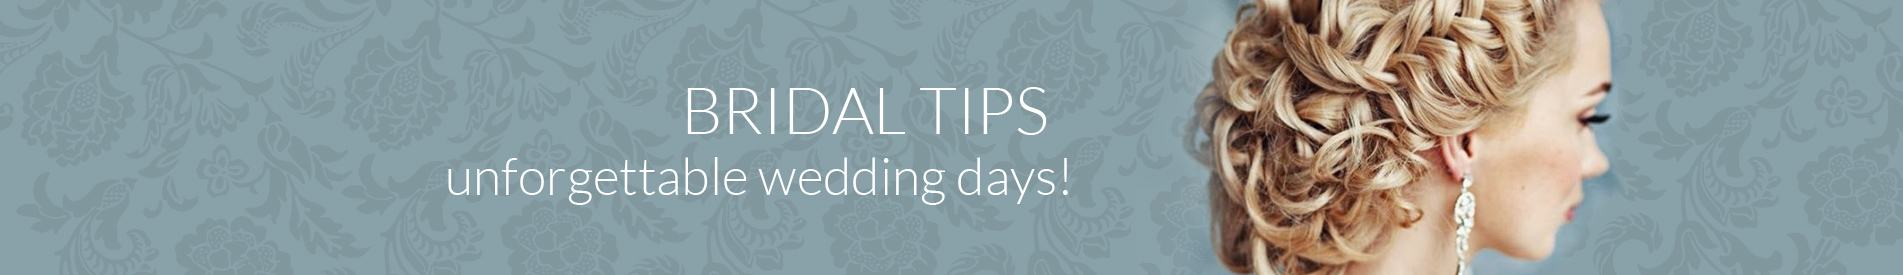 Hair and Beauty Bridal Tips